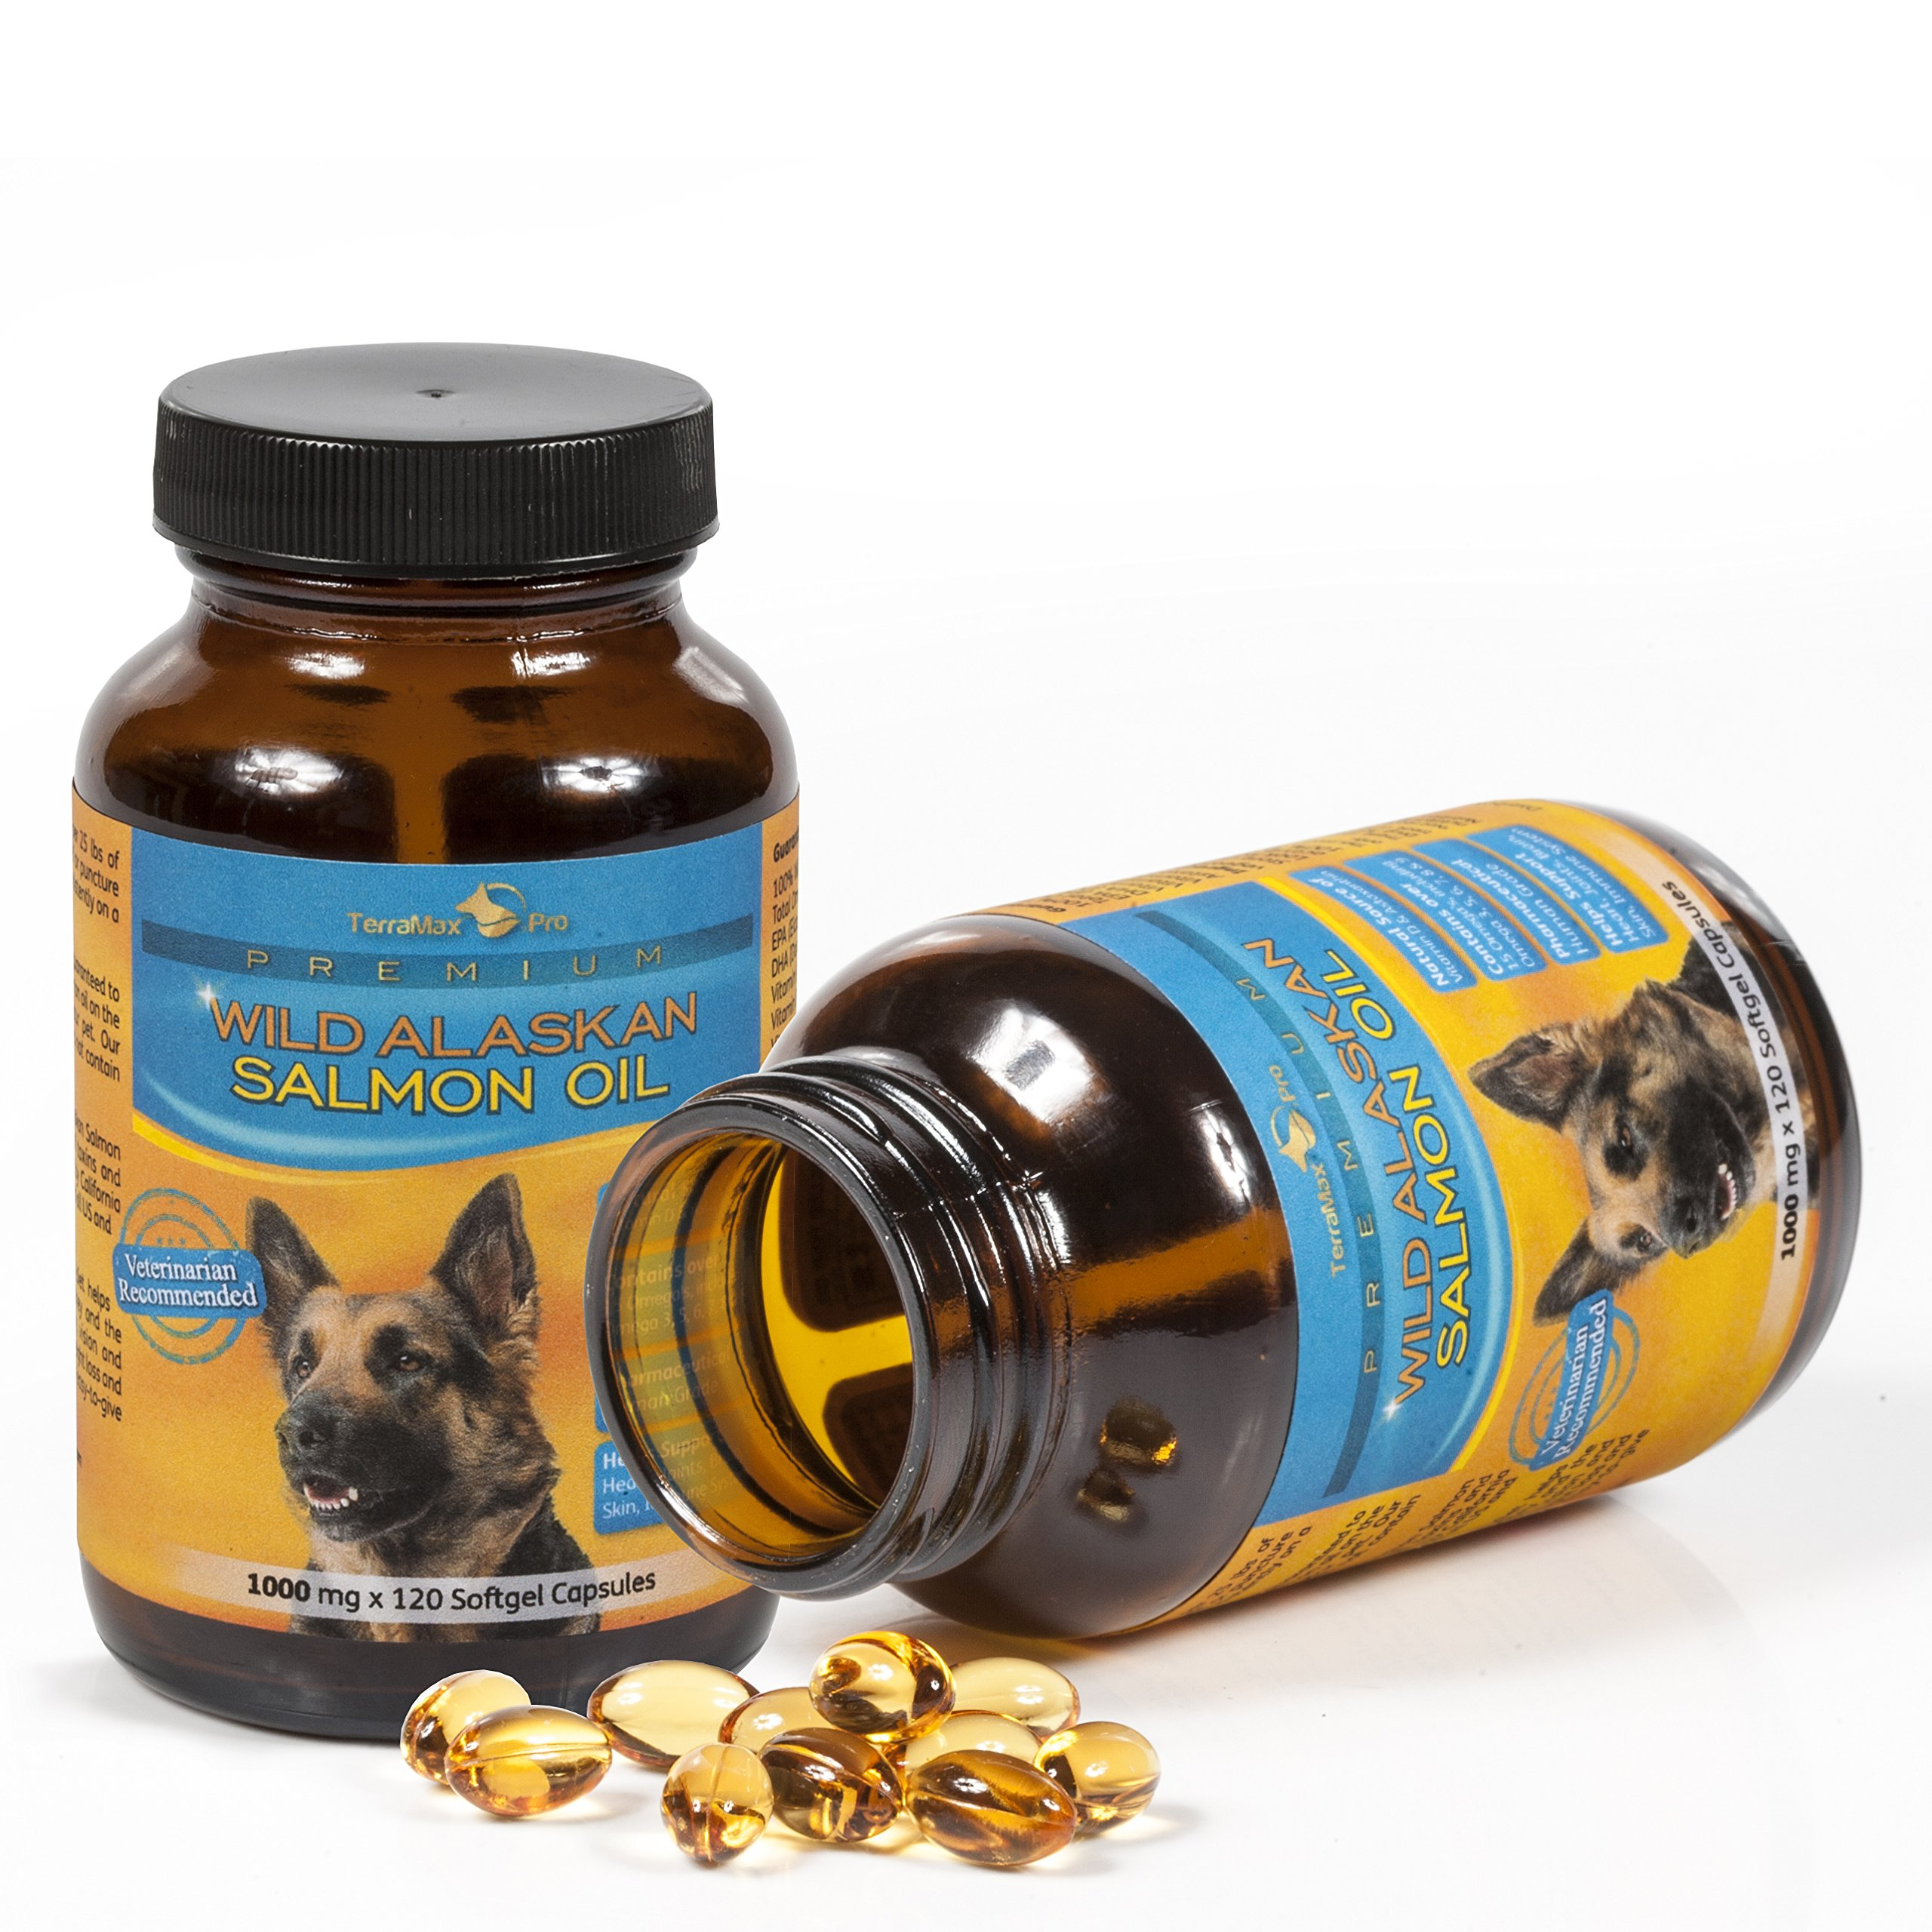 Premium Wild Alaskan Salmon Oil for Dogs and Cats | All-Natural Omega-3 Food Supplement | over 15 Omega's | EPA - DHA Fatty Acids | Natural Astaxanthin - Vitamin D | (1000 mg | 120 Soft Gel Capsules) by TerraMax Pro